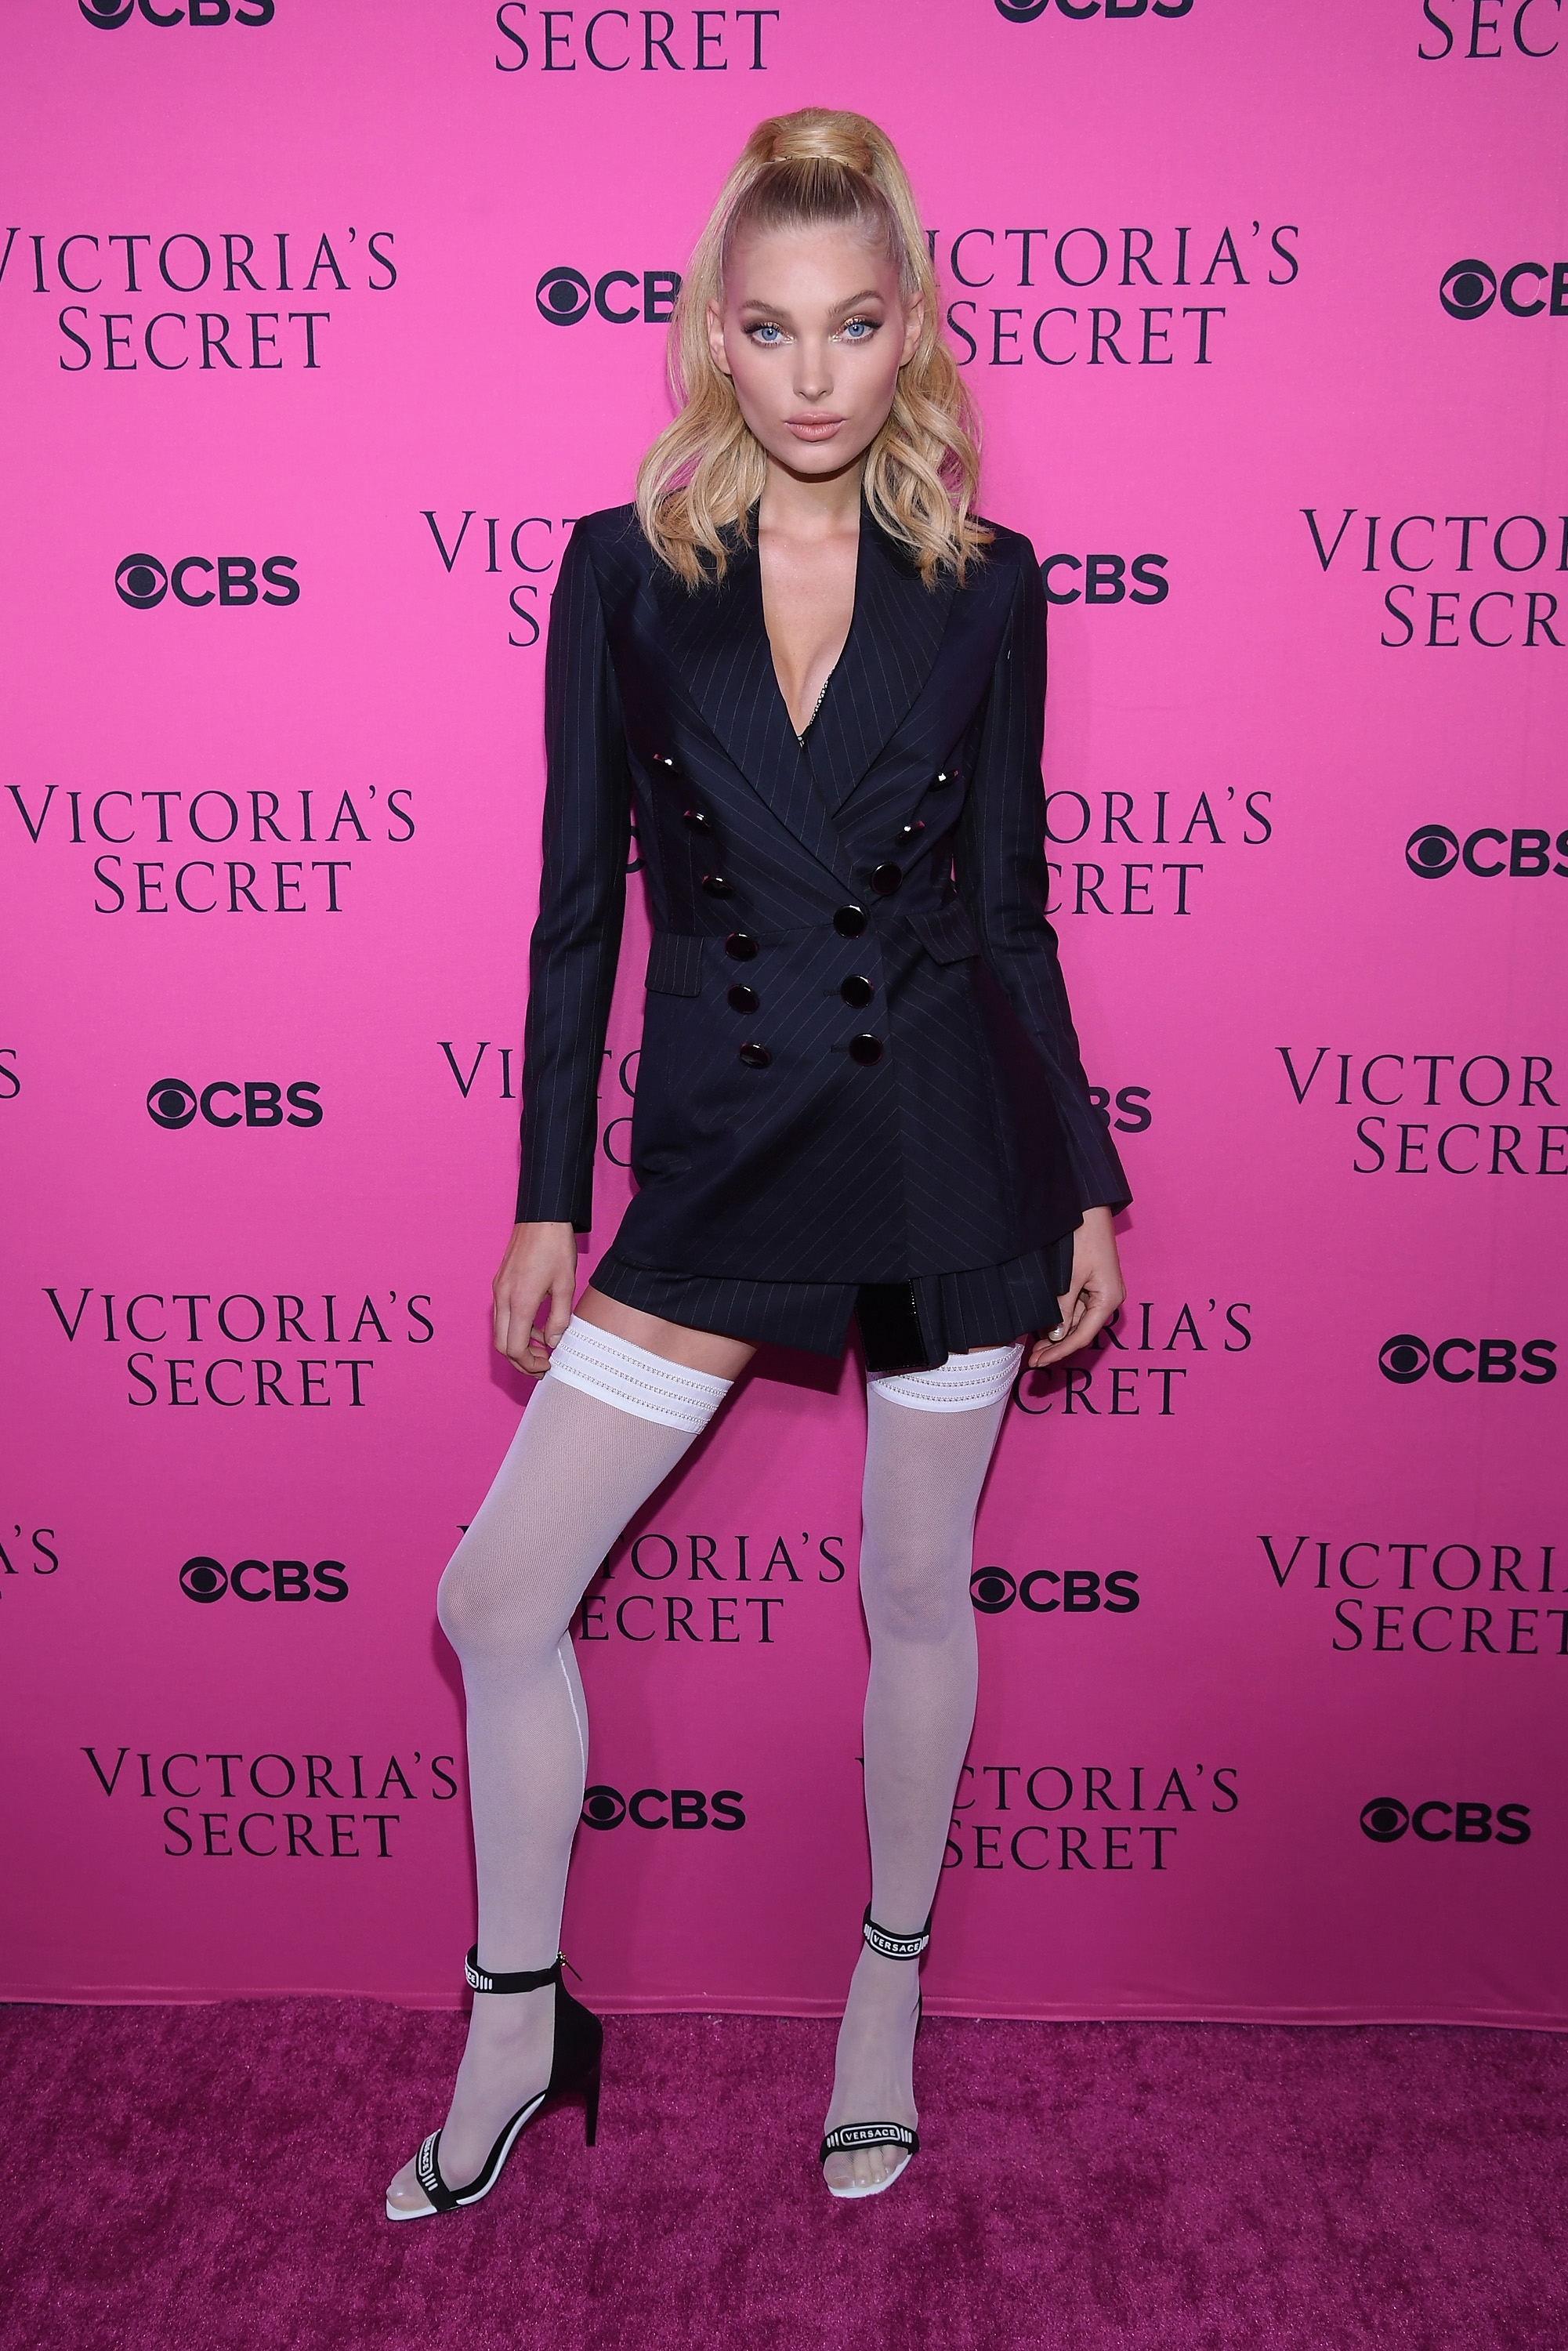 """<p>Spending most of their runway time for <a href=""""https://style.nine.com.au/victorias-secret"""" target=""""_blank"""">Victoria's Secret</a> barely covered in lace, feathers and wings, the superstars of the runway took advantage of the opportunity to dress up at a viewing party for the annual extravaganza.</p> <p>Bella Hadid, Martha Hunt and Adriana Lima were all on hand to dress up and celebrate the screening of the show staged in Shanghai.</p> <p>Sara Sampaio squeezed into an Aadnevik mini dress while Maria Borges looked like molten mustard in a skintight dress from Cushine et Ochs.</p> <p>It was Bella Hadid who managed to steal the show in a snakeprint dress. Latex generally grabs attention.</p> <p>Elsa Hosk (pictured) went for a Gaultier meets Madonna inspired look.</p> <p></p> <p></p>"""